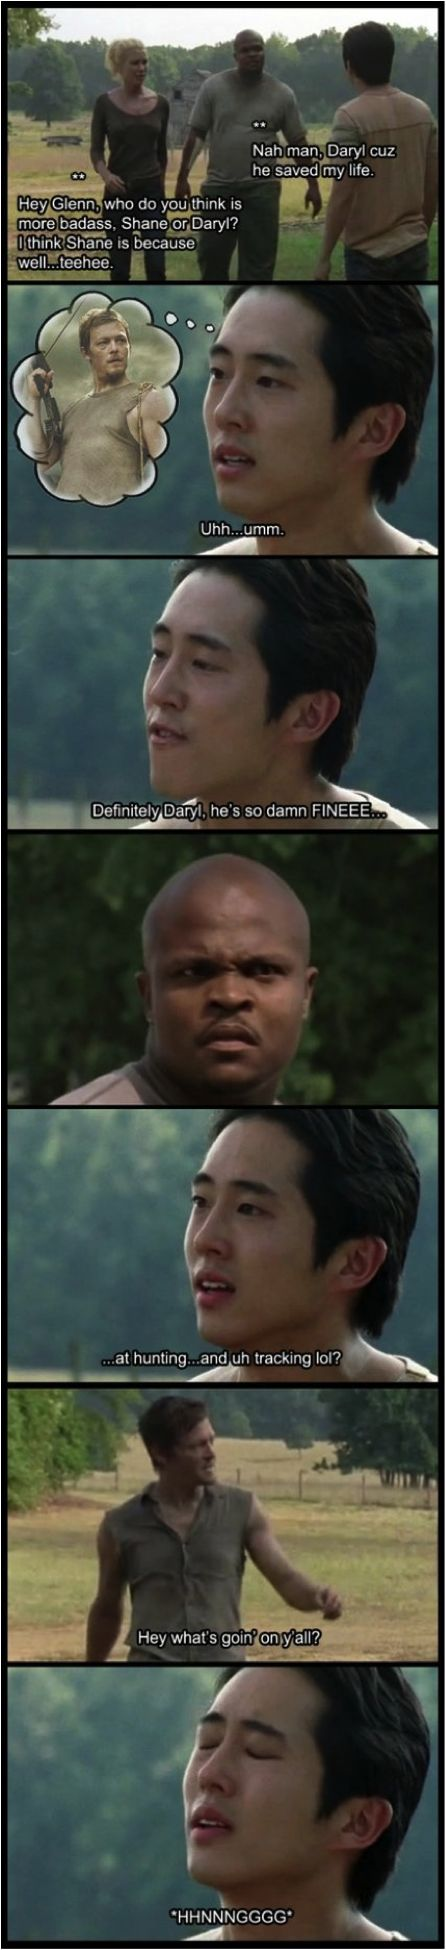 34 Hilarious 'Walking Dead' Memes from Season 2 from Dashiell Driscoll and Memes!